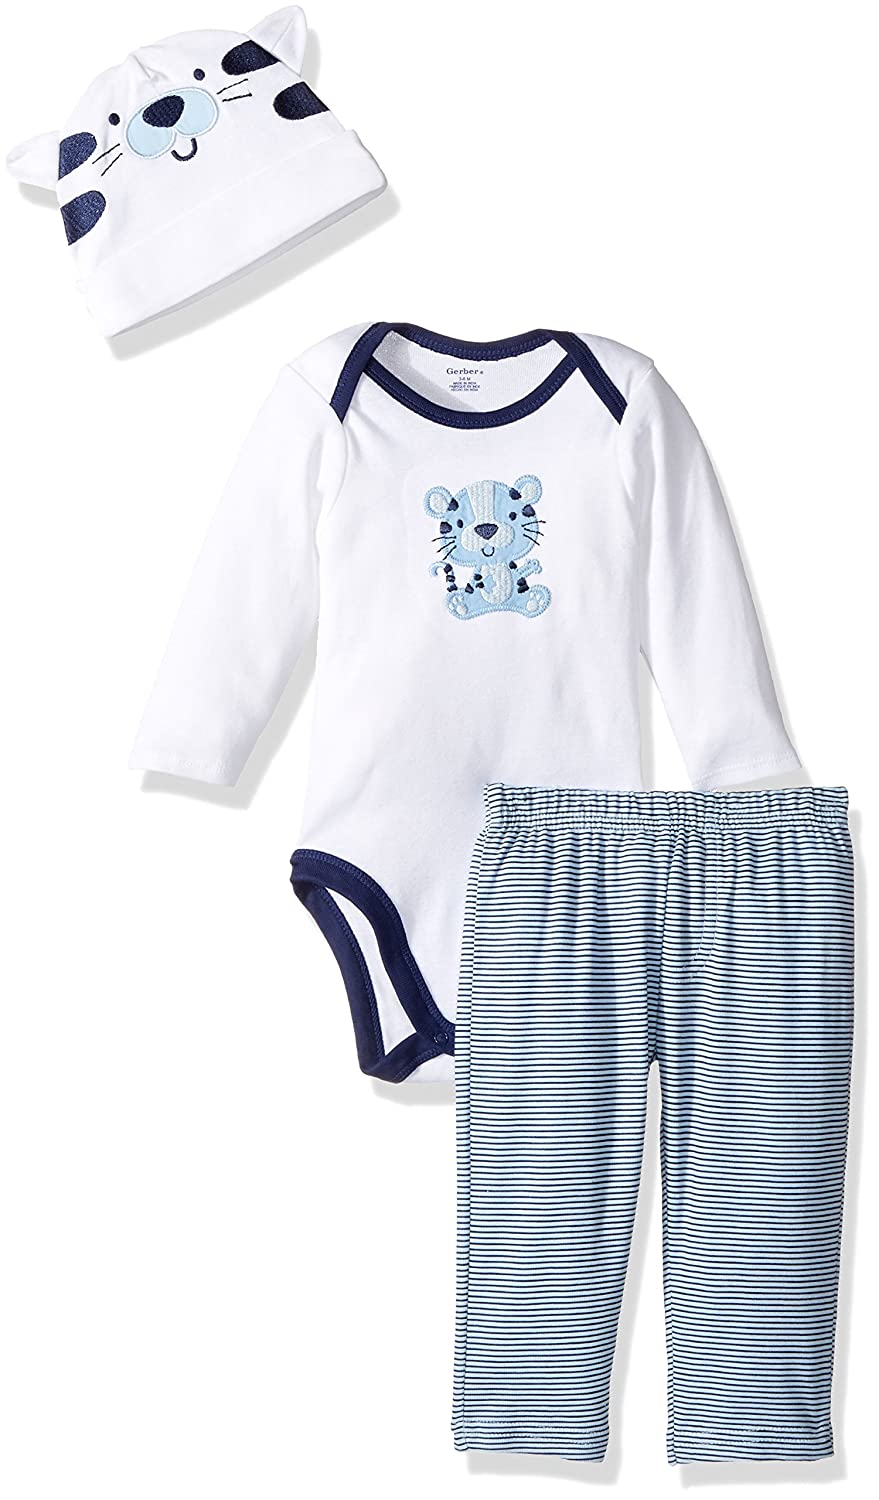 Gerber Baby Boys' 3 Piece Bodysuit, Cap and Pant Set Gerber Children' s Apparel FA17AB